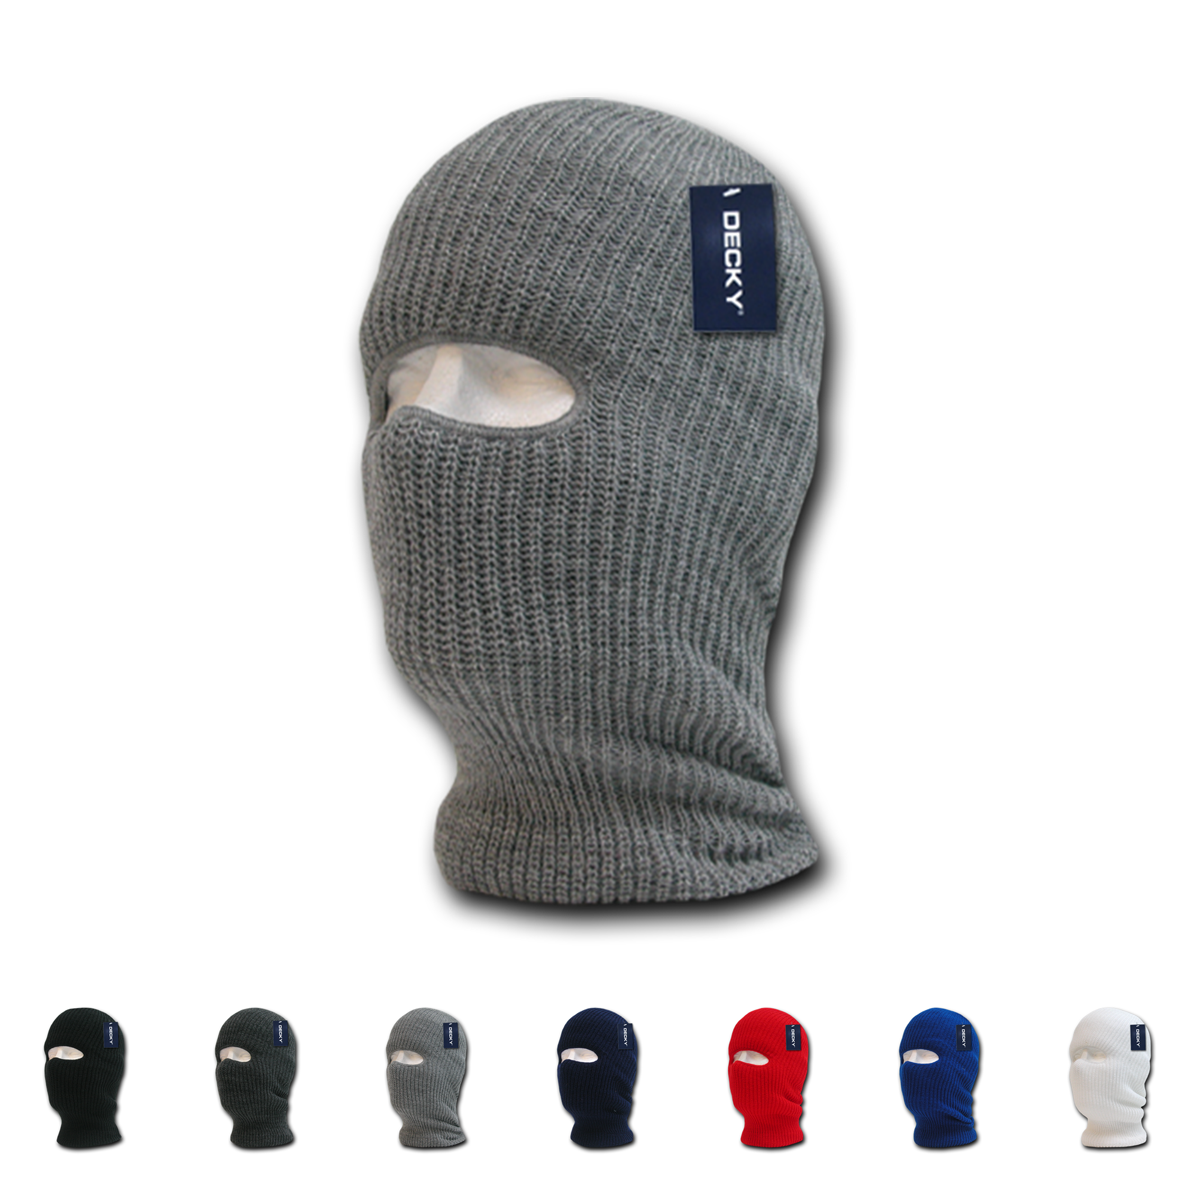 The Wholesale Blank Ski Mask 1 Hole Decky 971 Is A Long Braided Knit Beanie Cap That Is Meant To Be Pulled Over The Face And Fea Ski Mask Skiing Knit Beanie